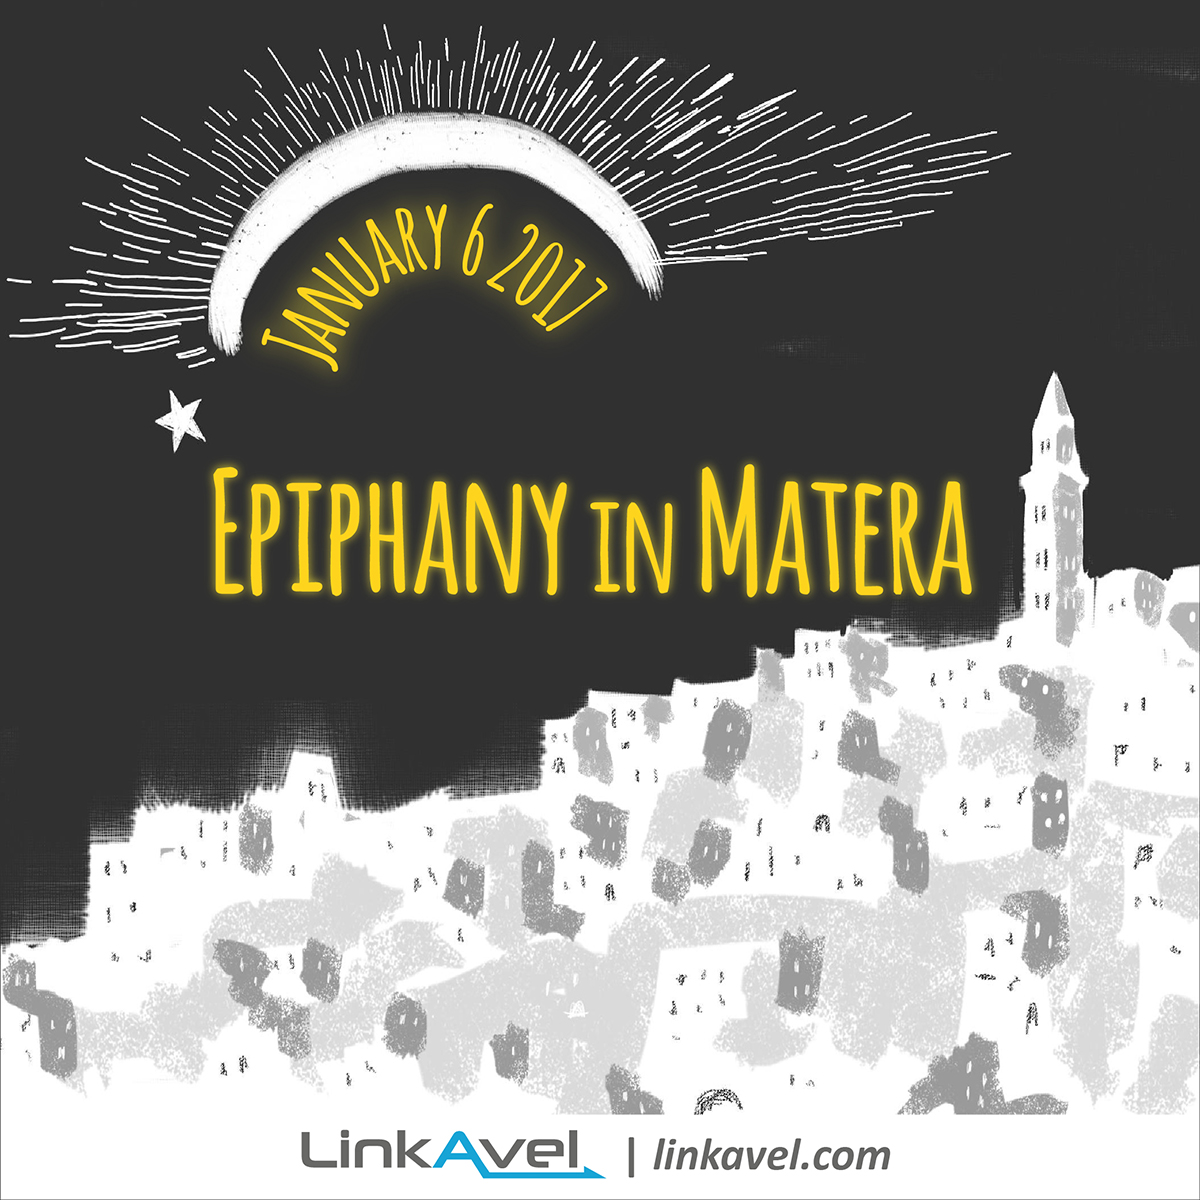 Epiphany in Matera 6 January 2017